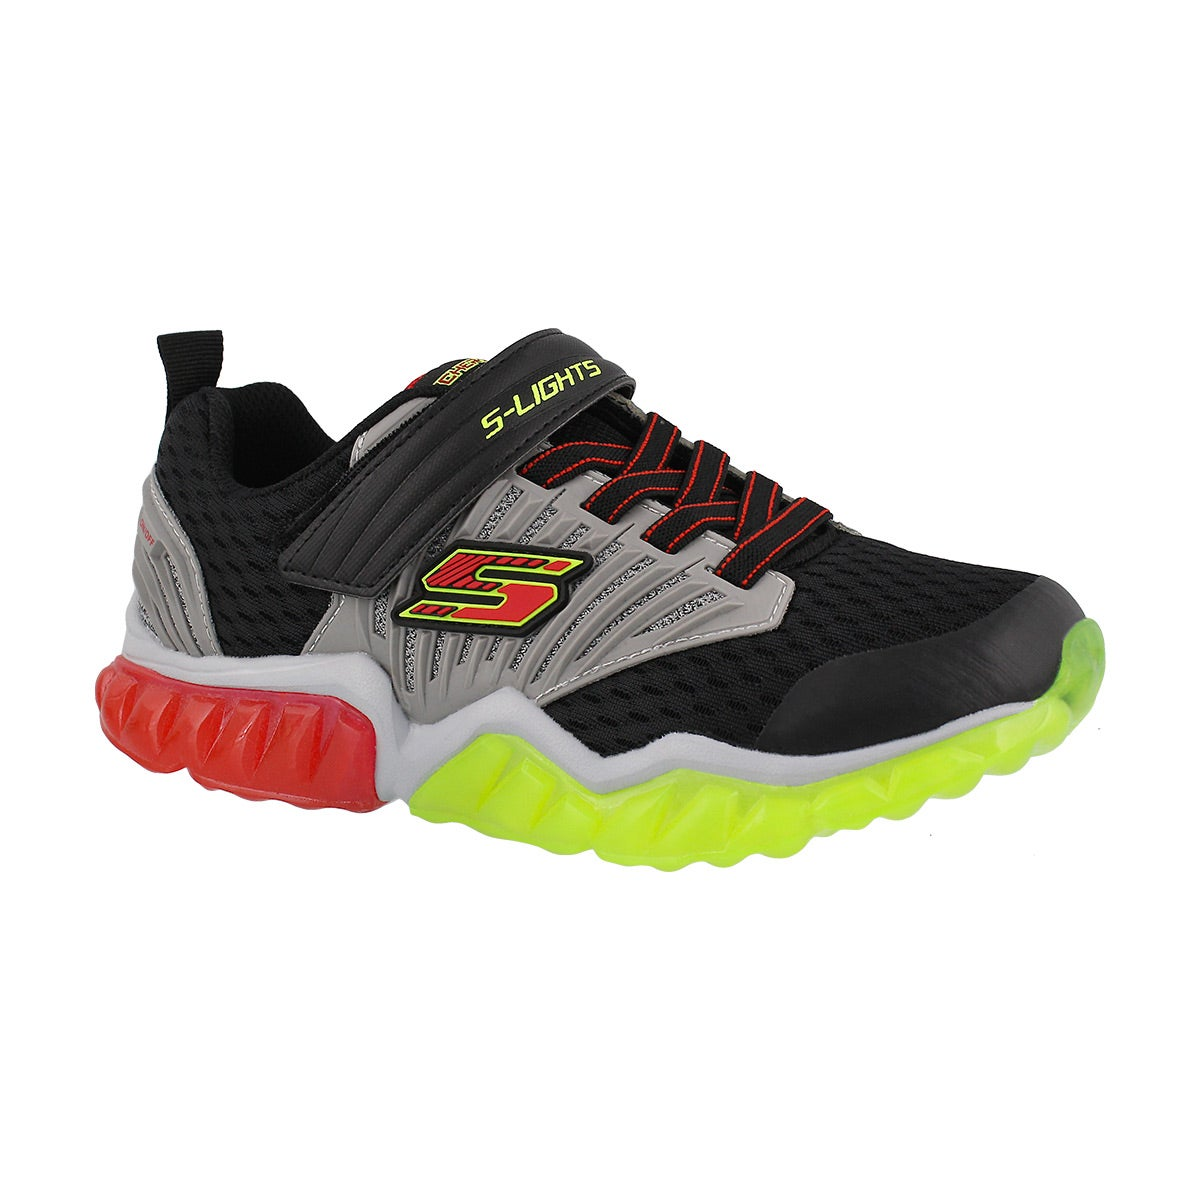 Boys' RADID FLASH blk/grn/rd light up sneakers